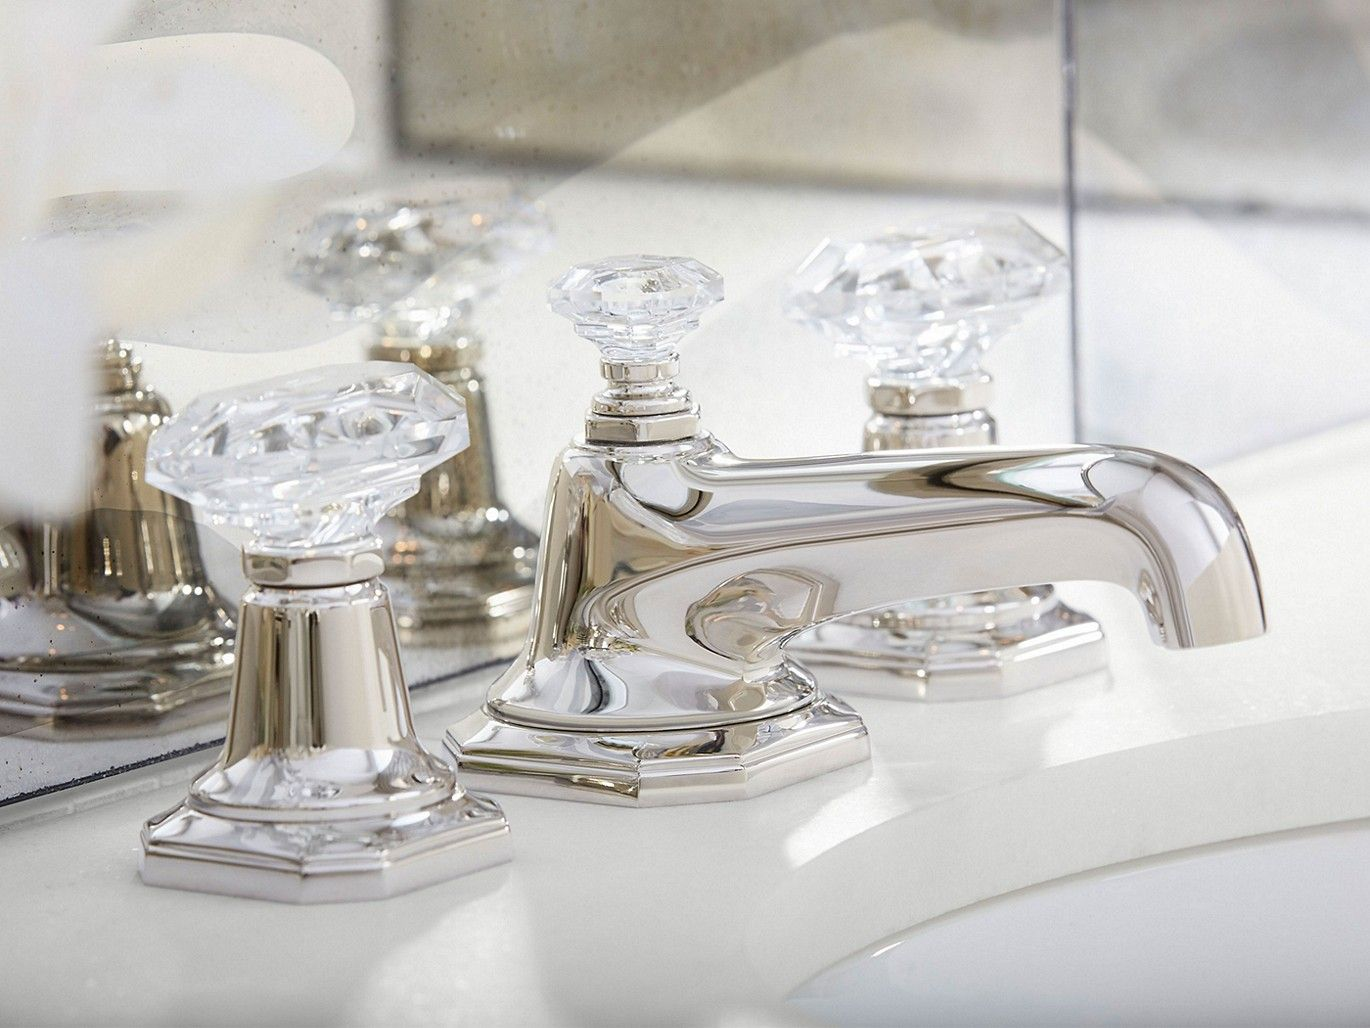 Sink Faucet Clear Crystal Handles Sink Faucets Faucet Sink